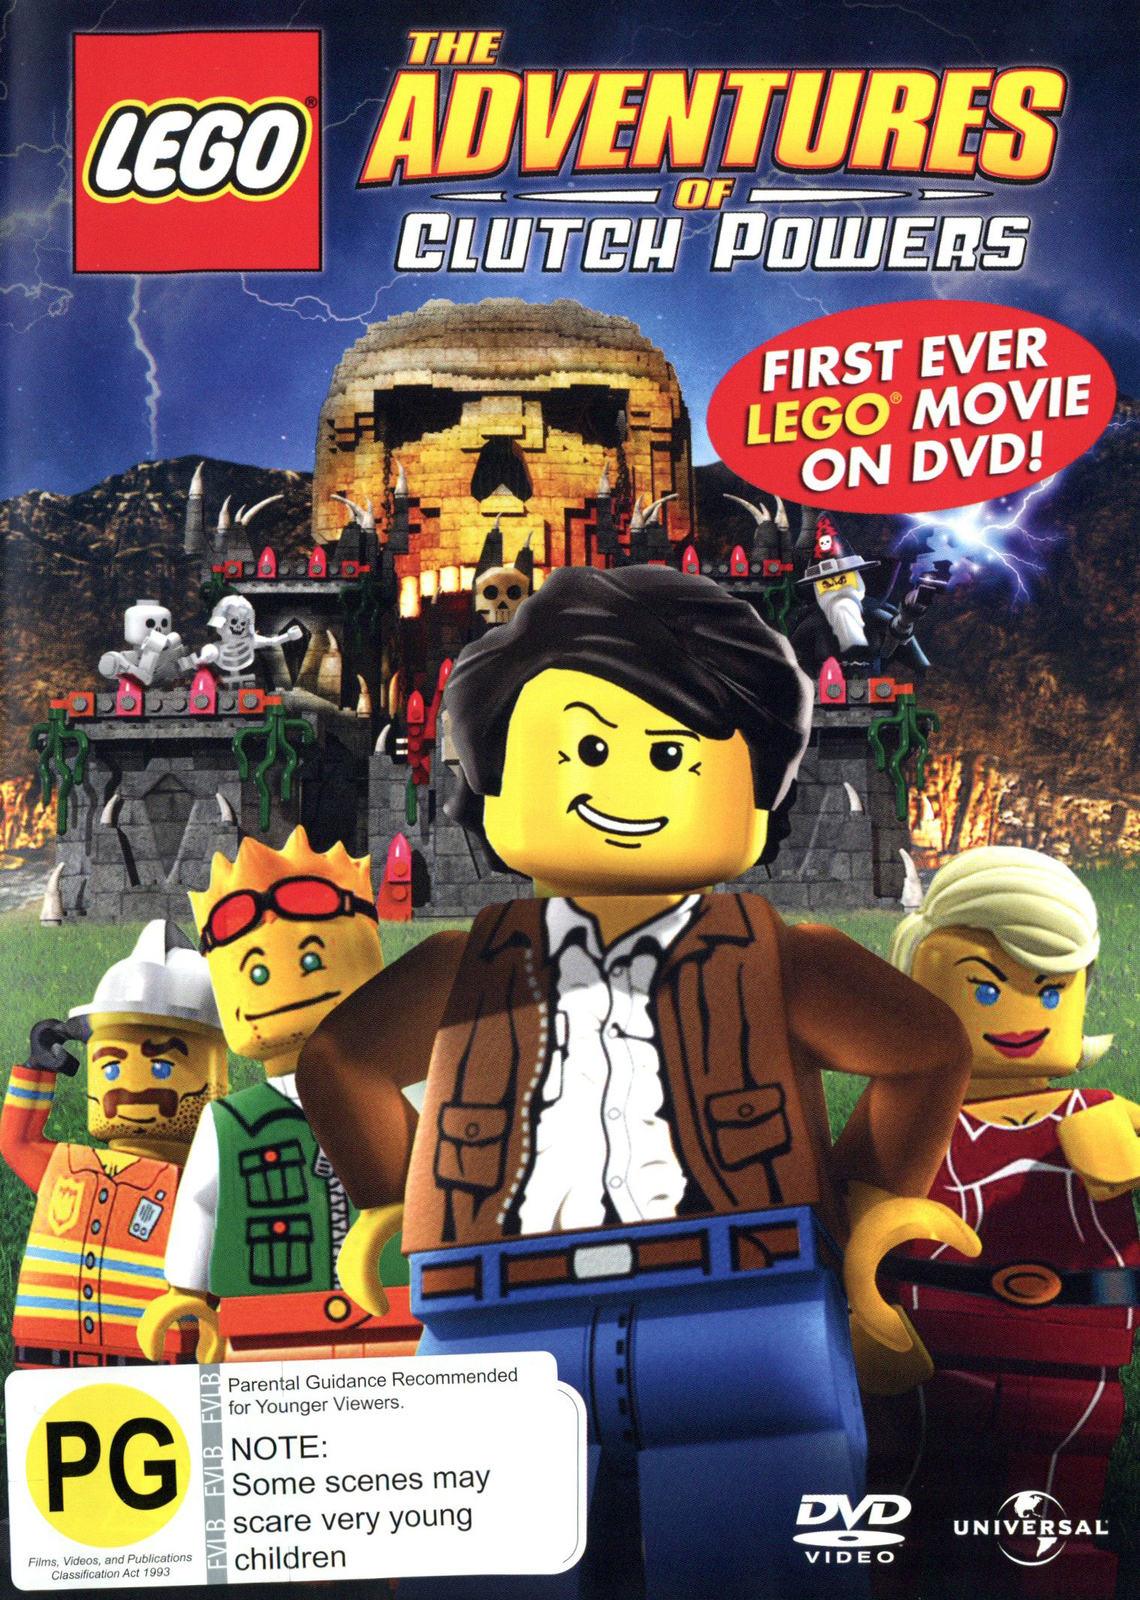 Lego - The Adventures of Clutch Powers on DVD image